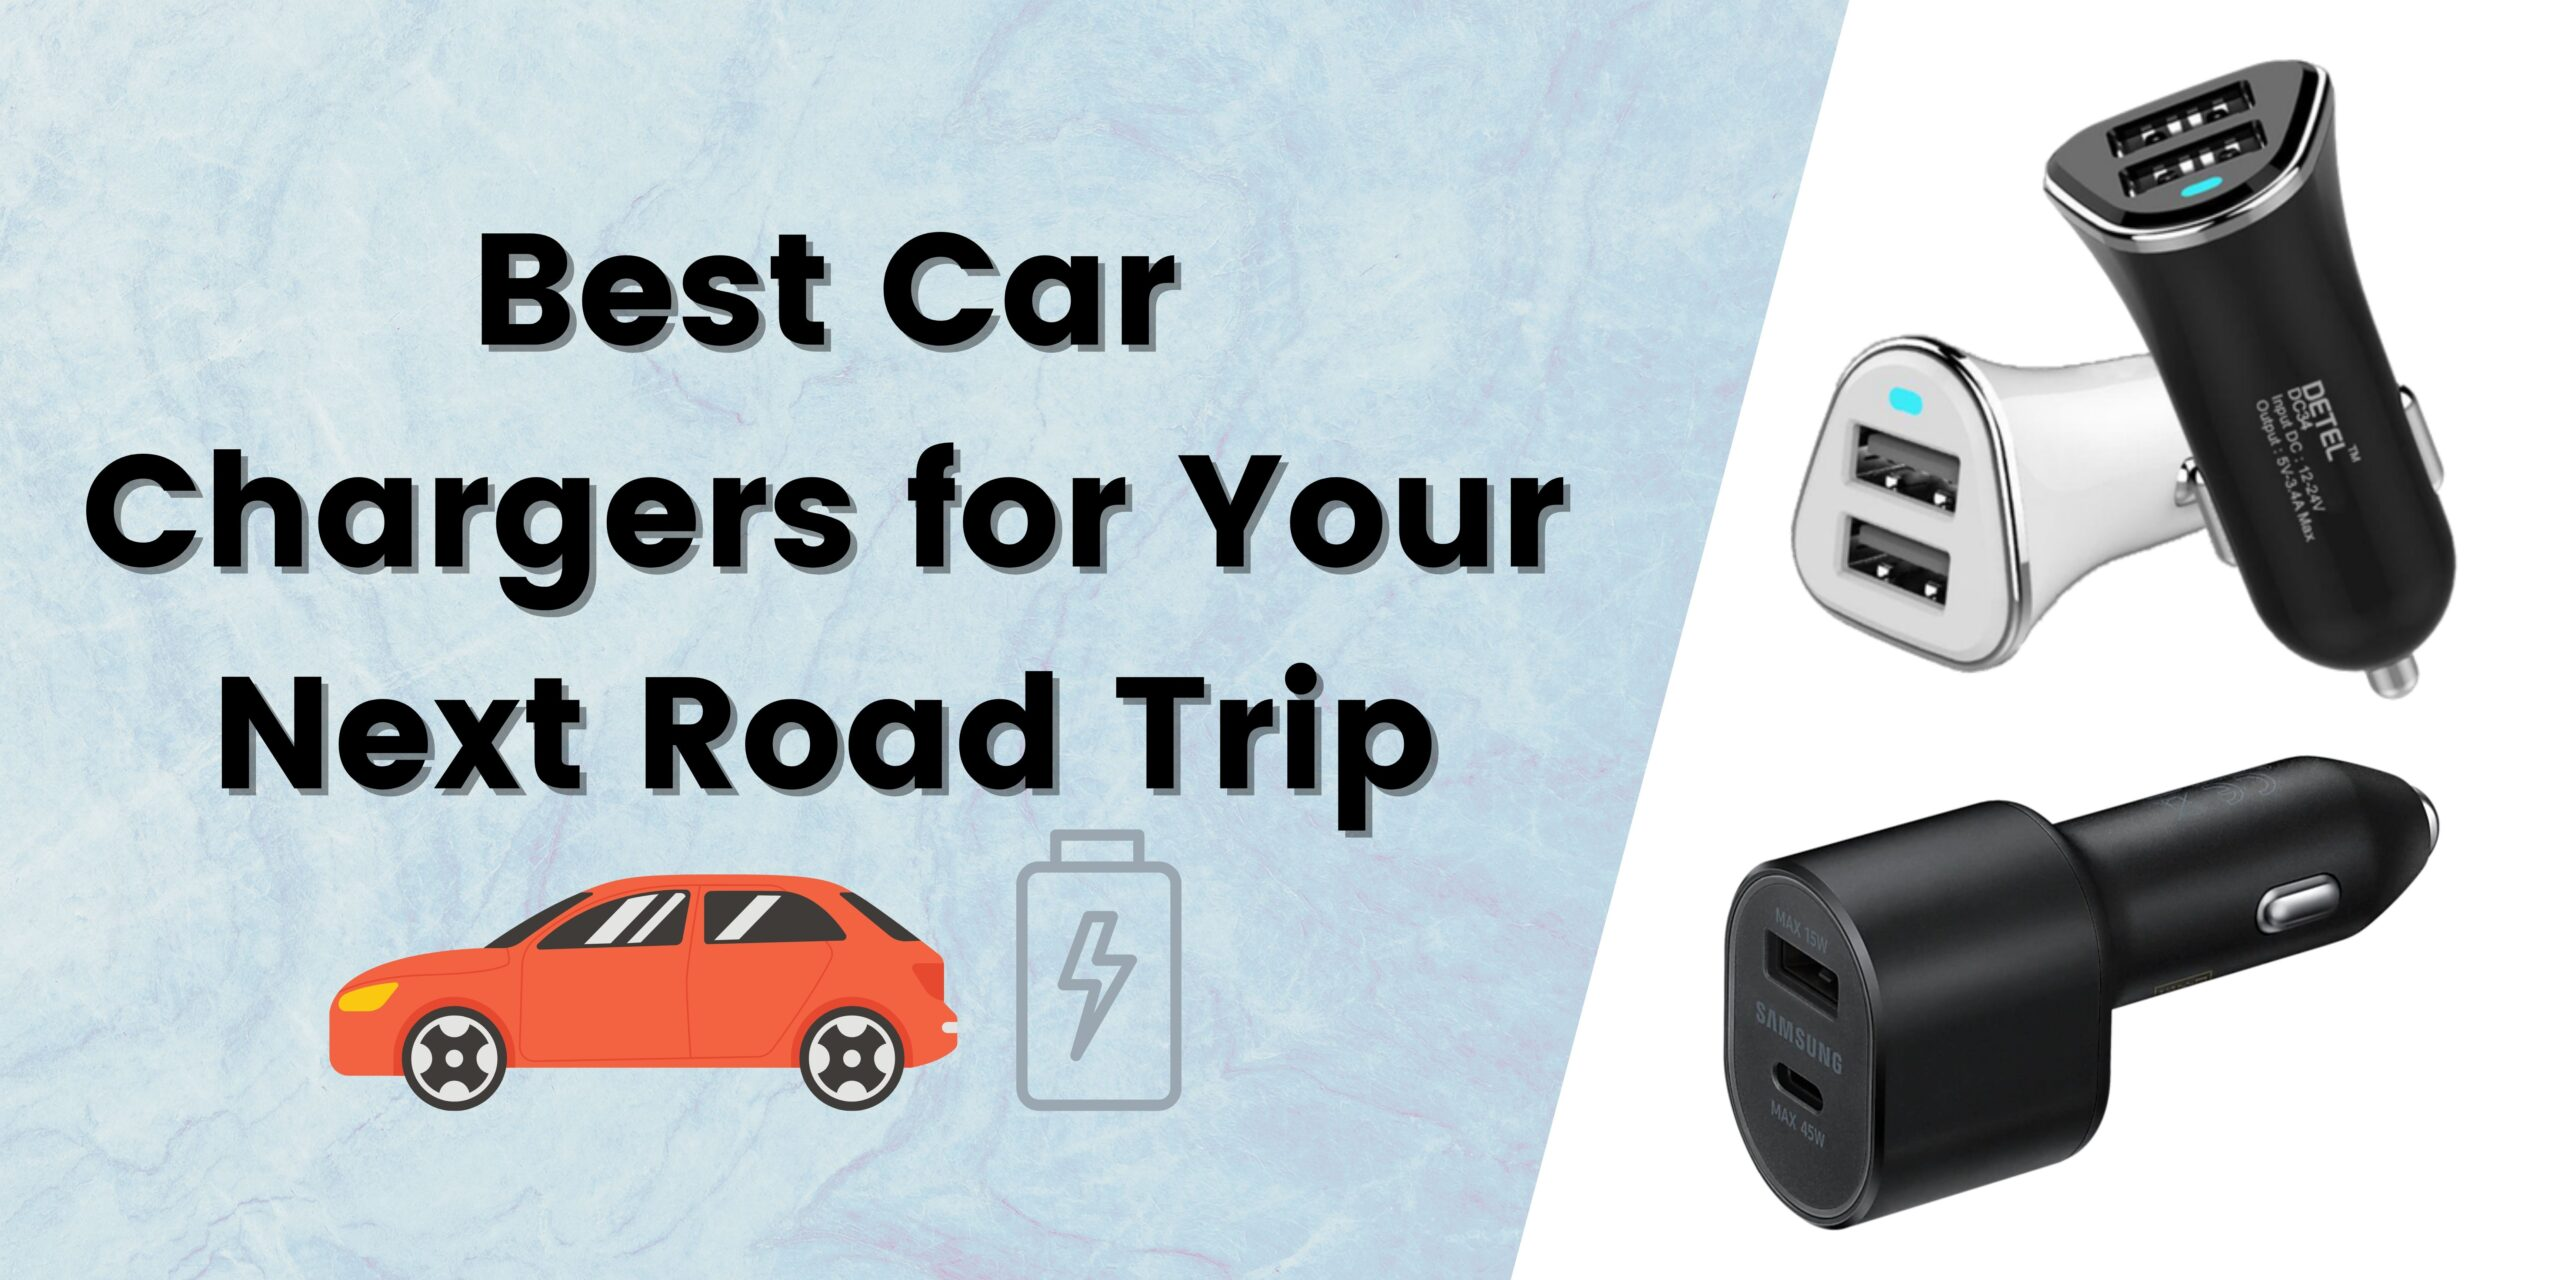 Best Car Chargers for Your Next Road Trip